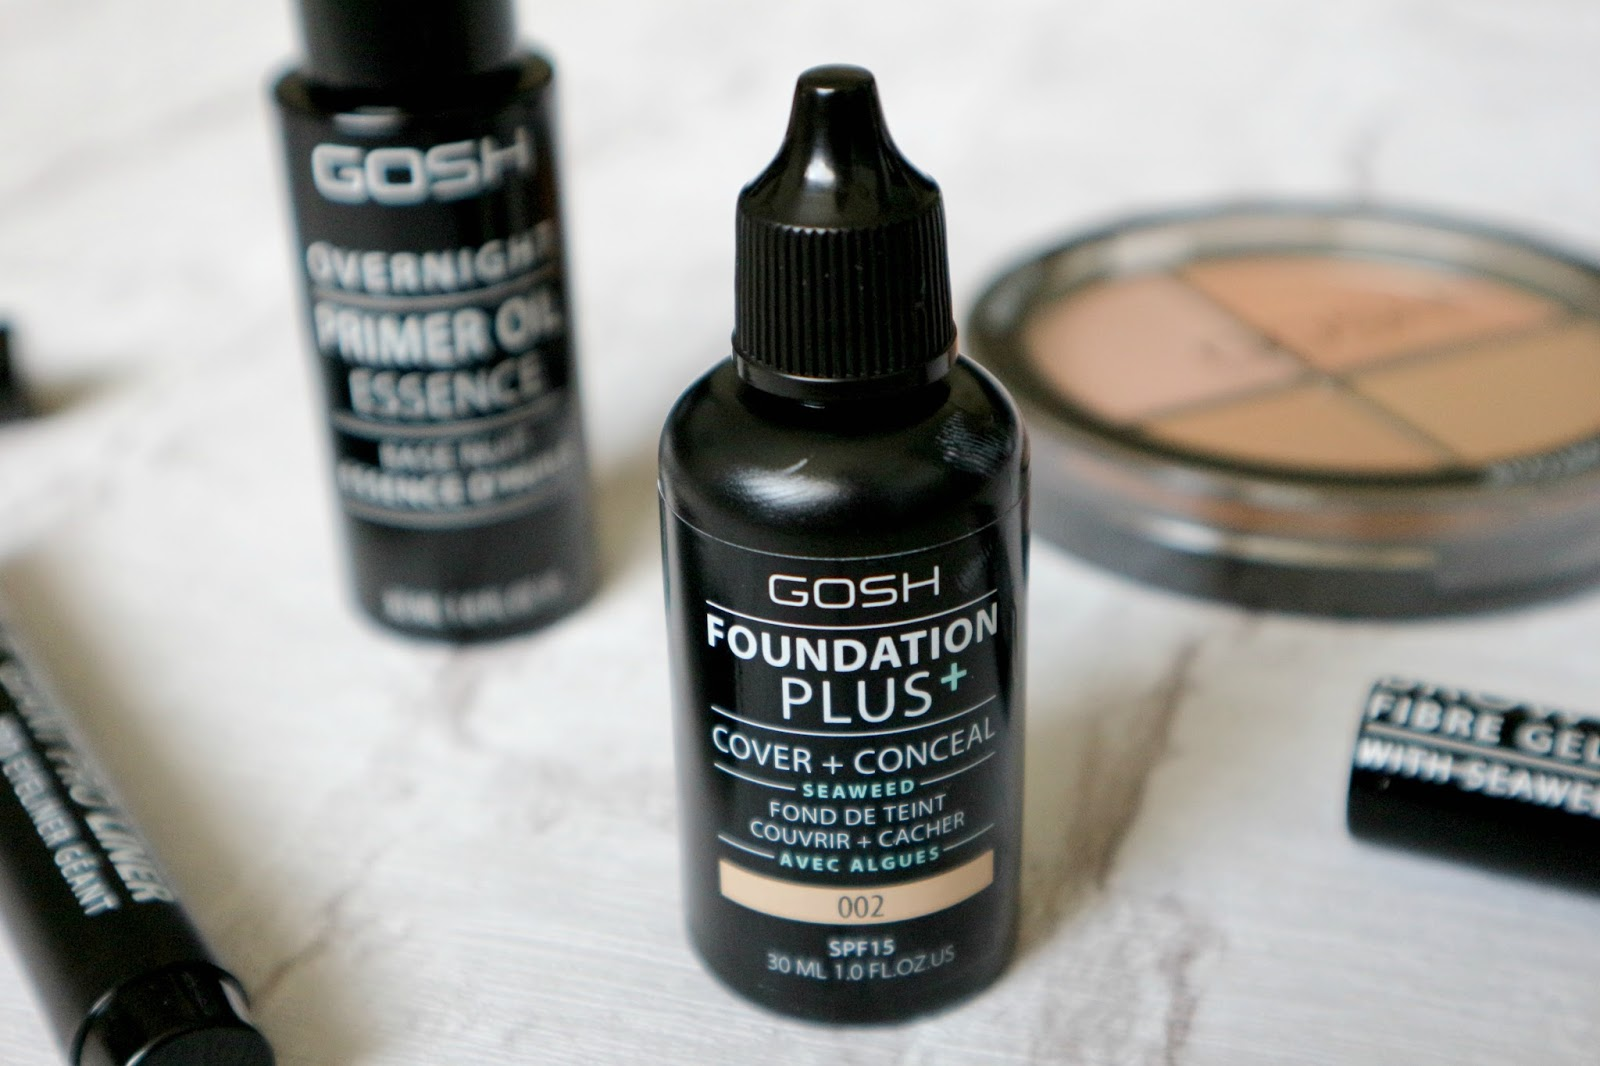 GOSH Foundation + Cover + Conceal